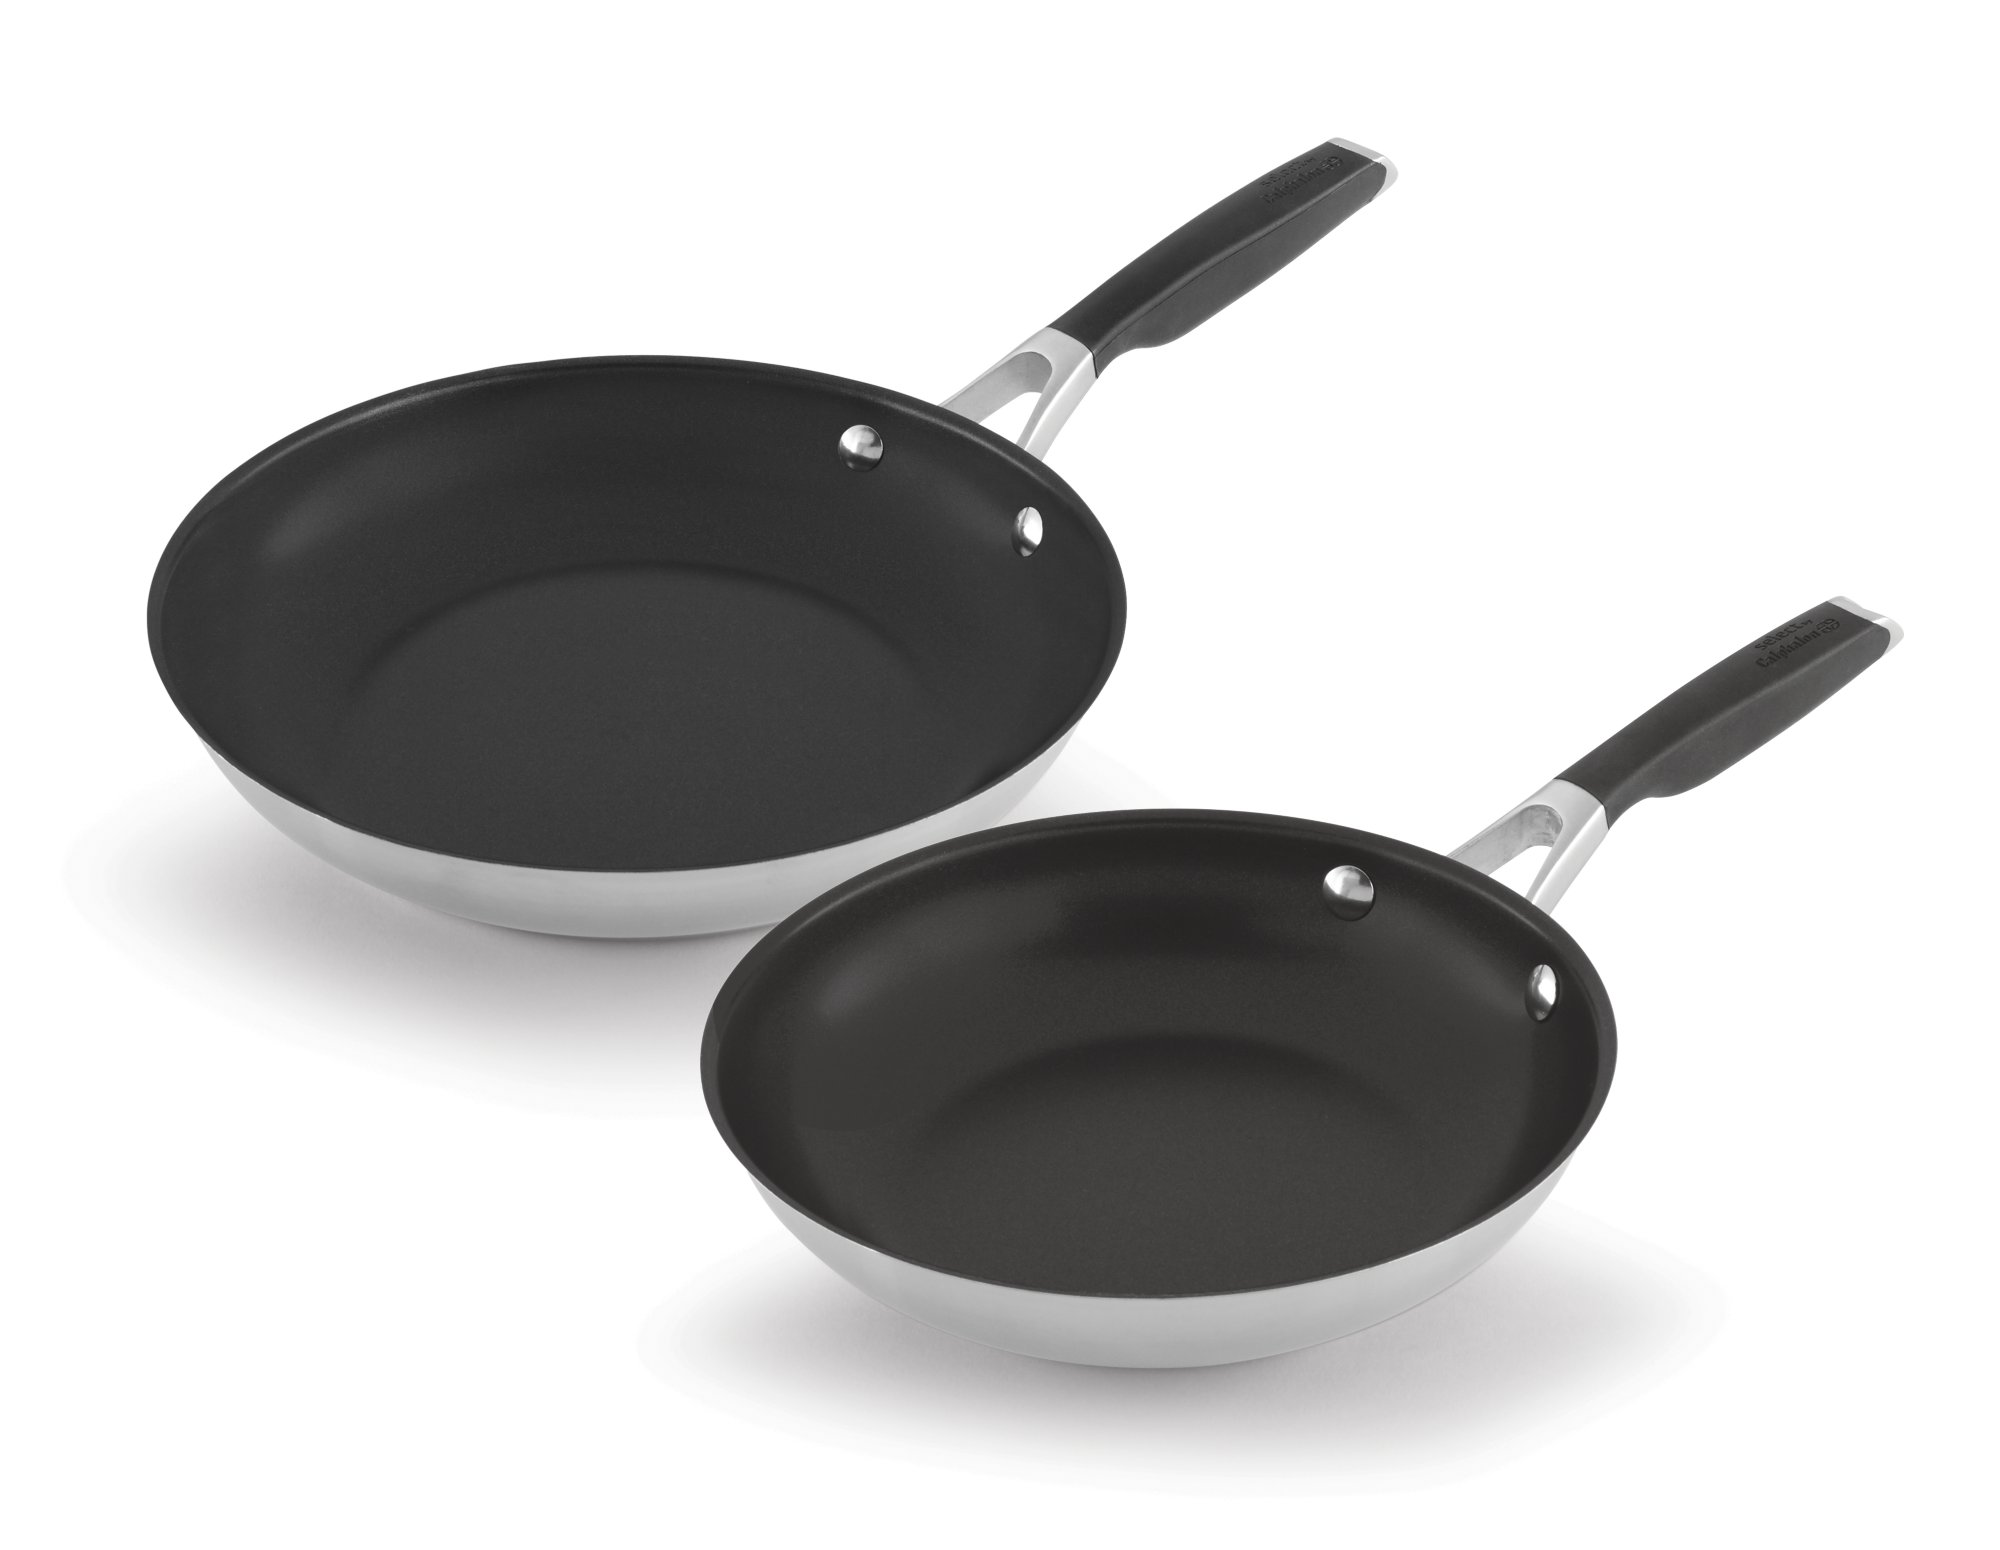 Select by Calphalon Stainless Steel Nonstick 8-Inch and 10-Inch Fry Pan Set